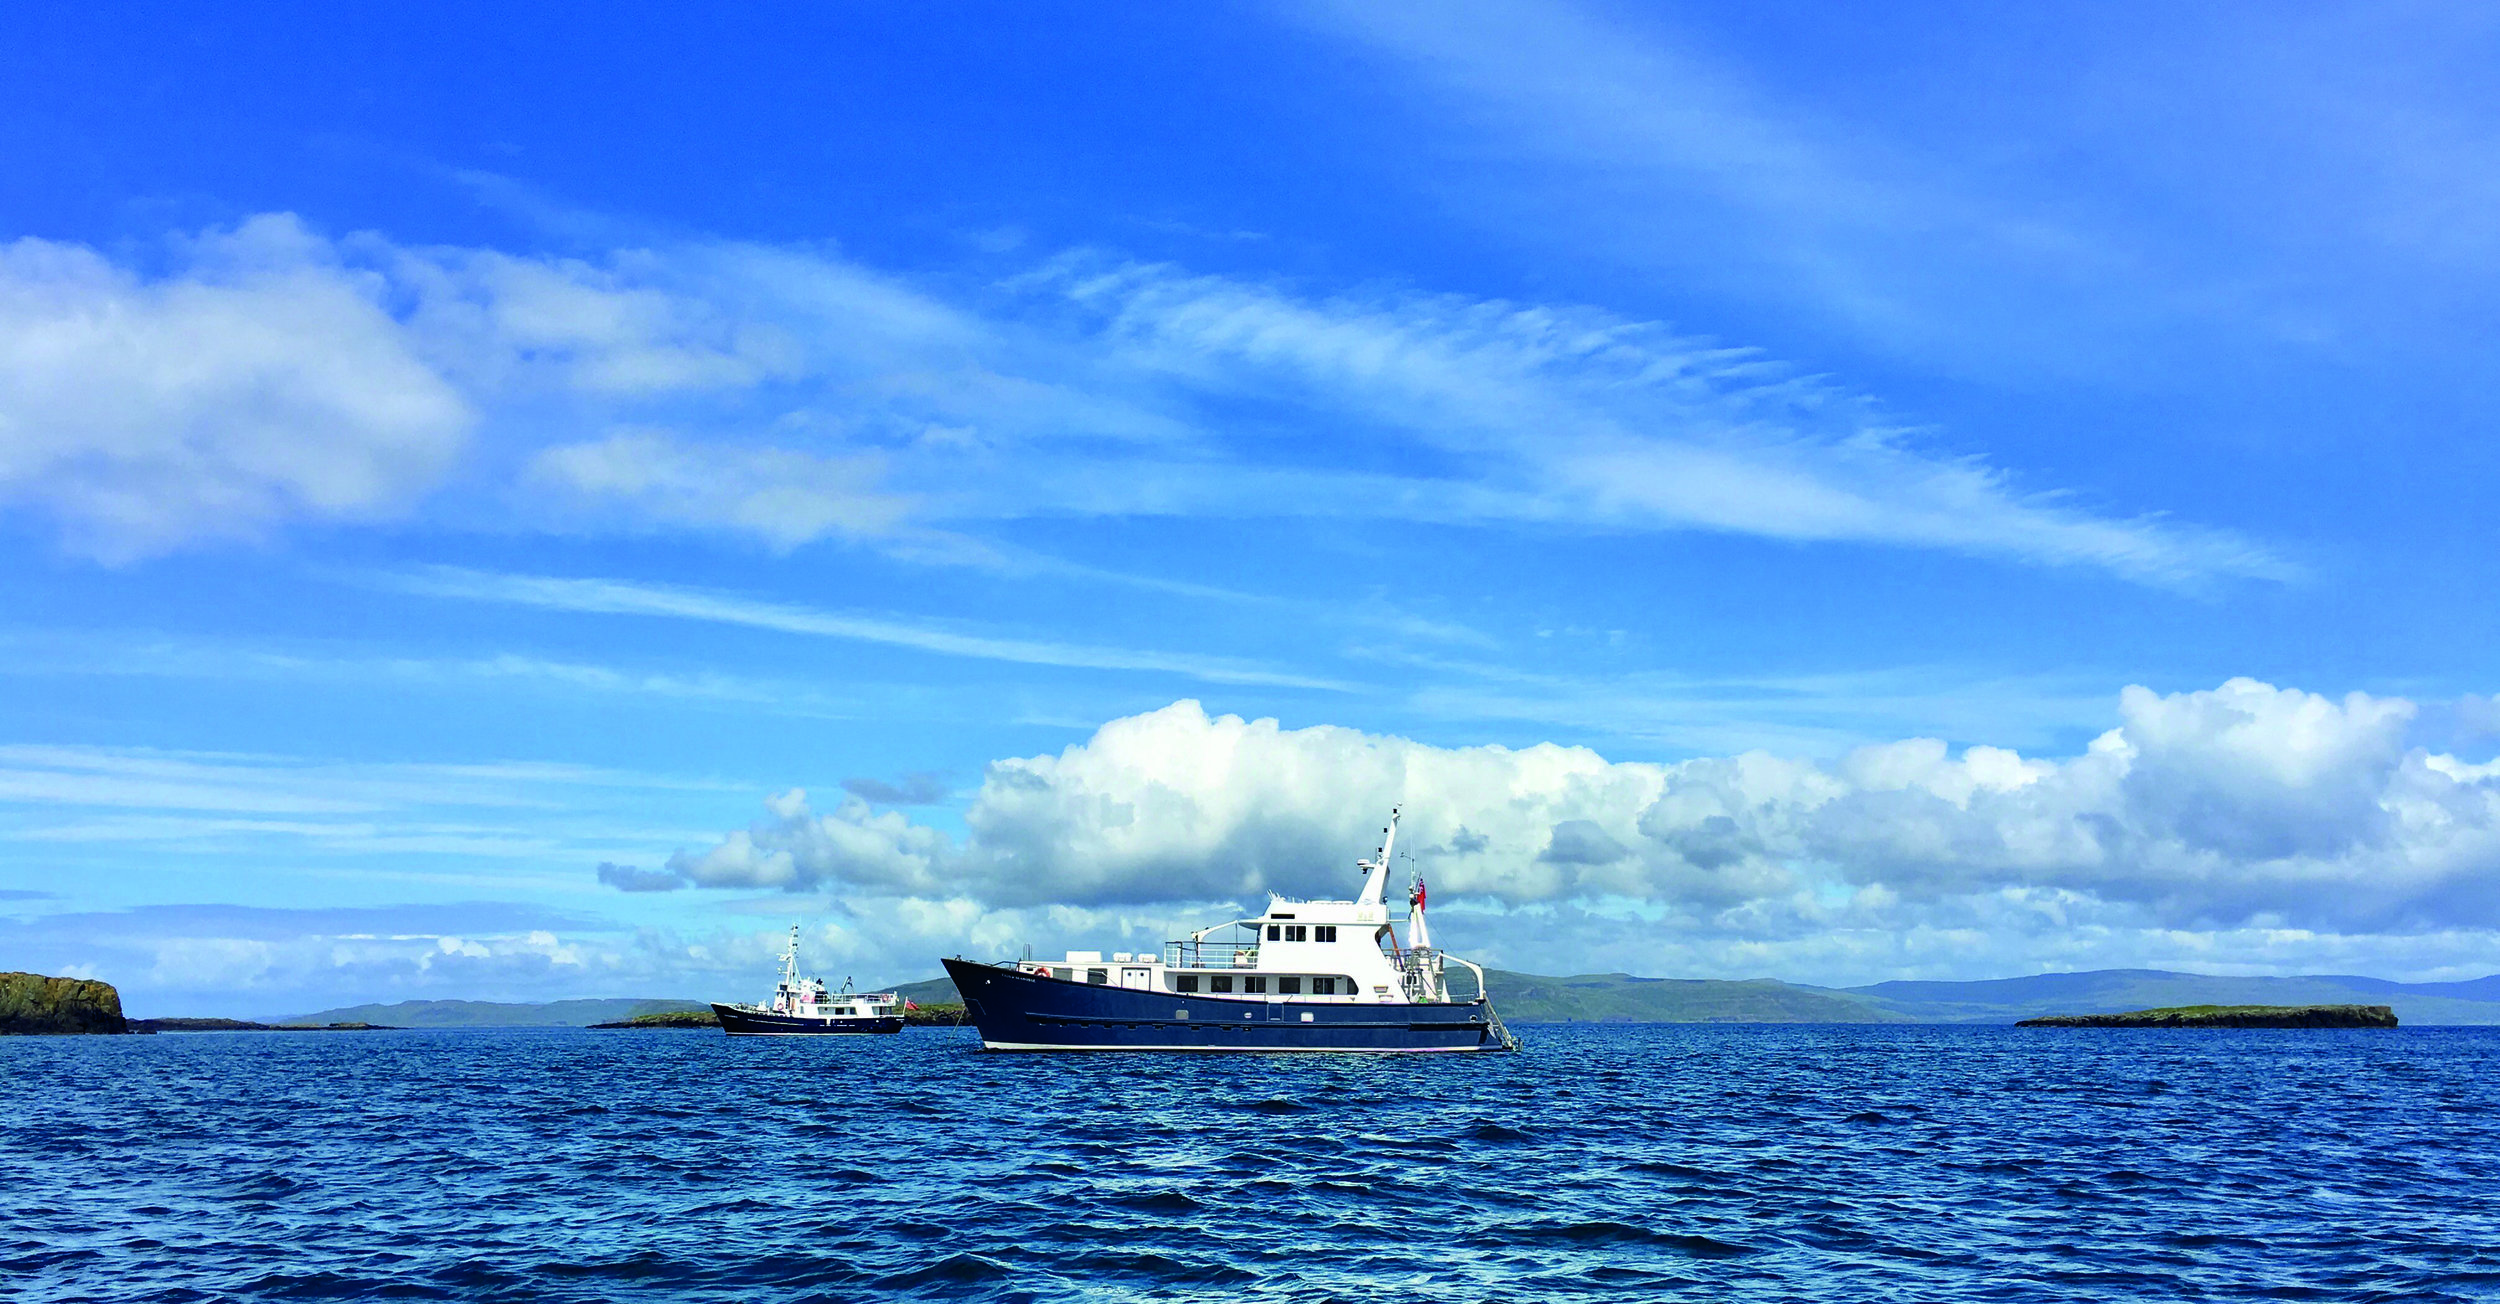 Hebrides Cruises' vessels Elizabeth G and Emma Jane